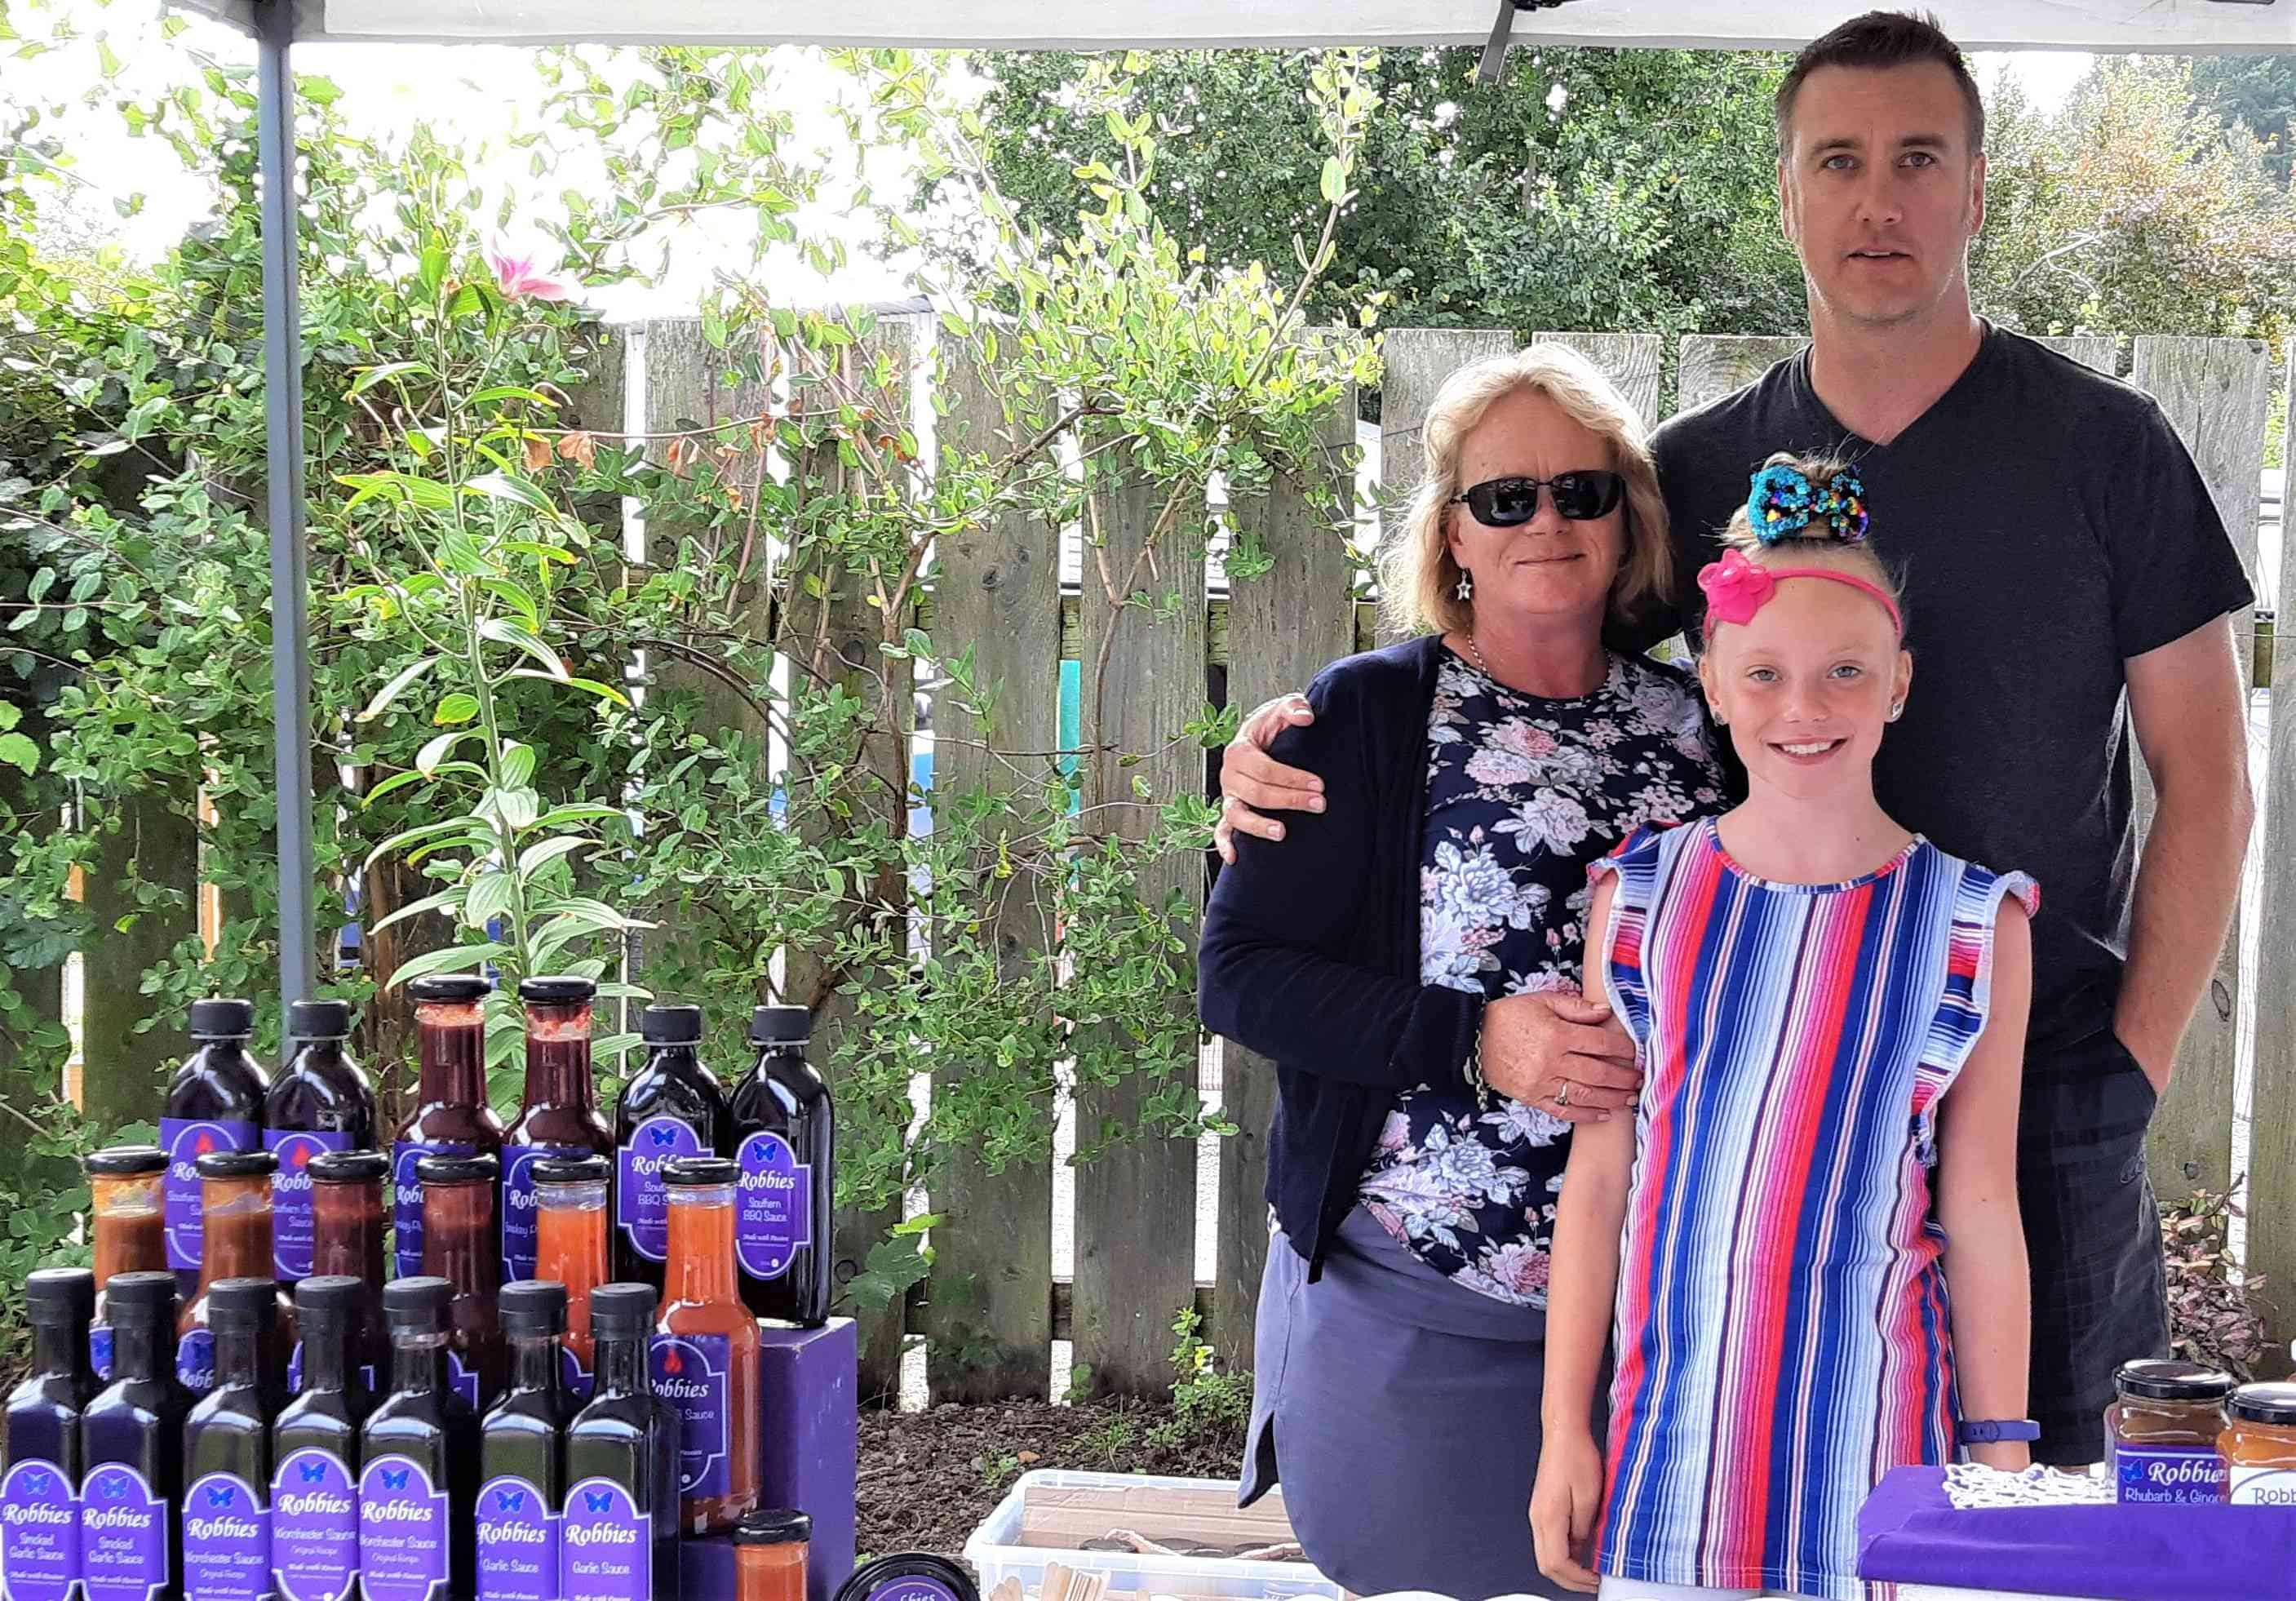 The Robinson Family at the Robbies Pickles and Preserves stall in Athol.